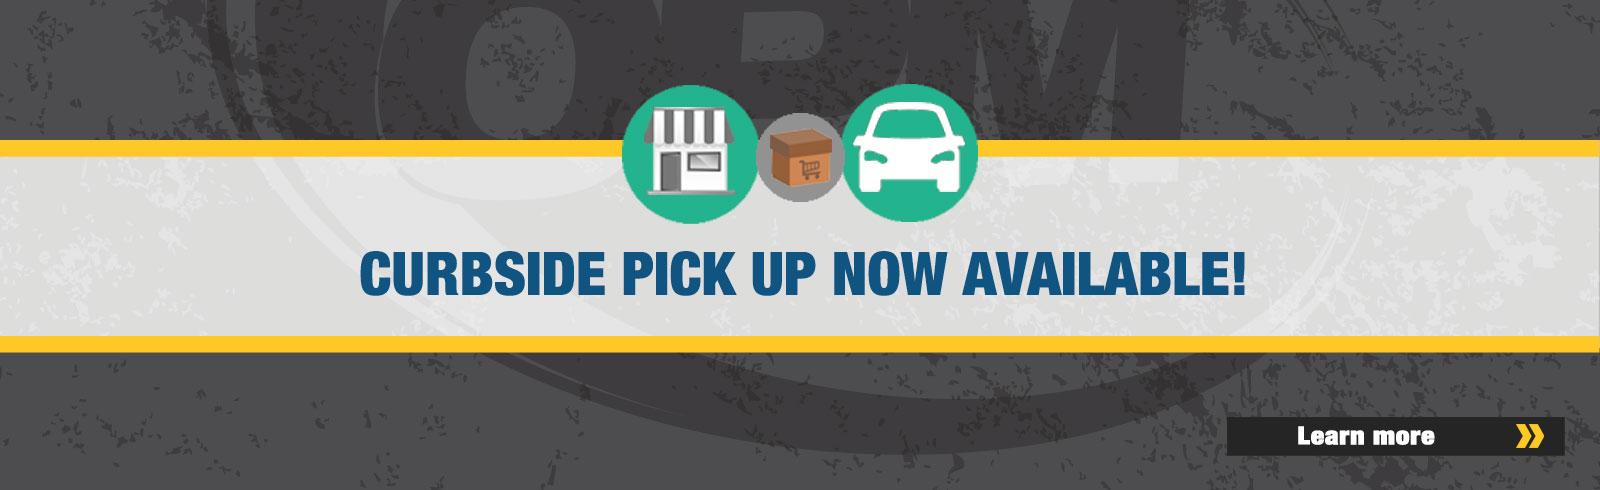 Curbside Pick Up Now Available!